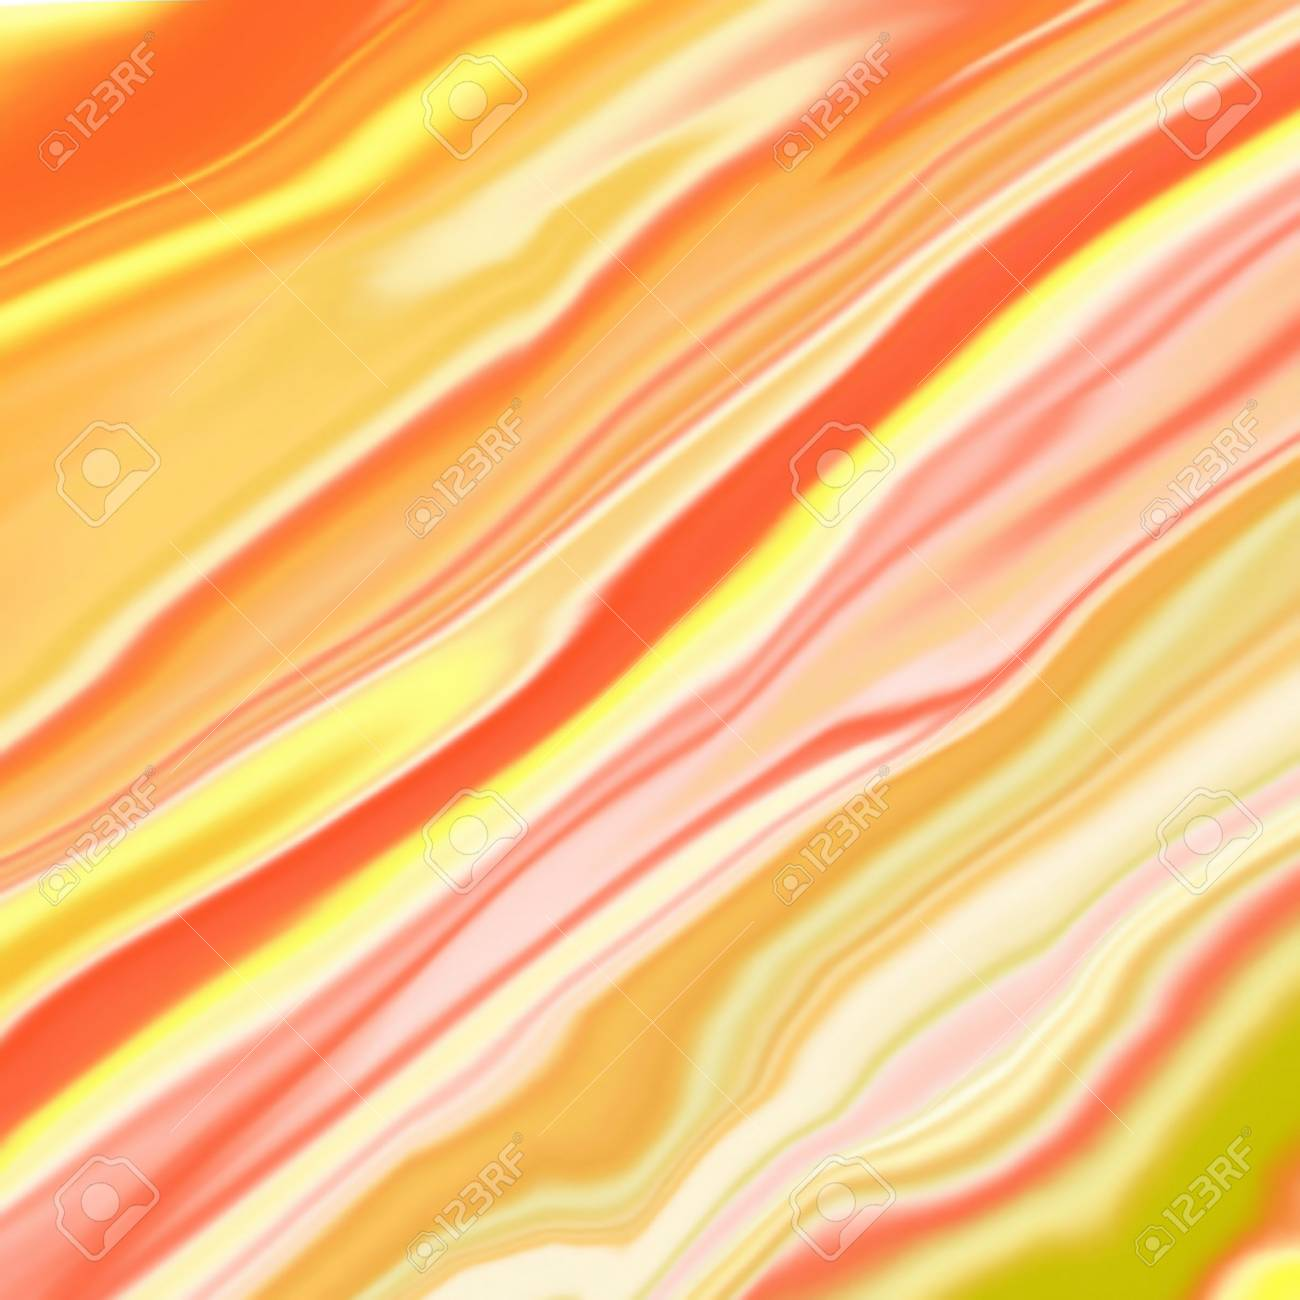 Sunny Bright Yellow And Orange Marble Background Stock Photo Picture And Royalty Free Image Image 93048642